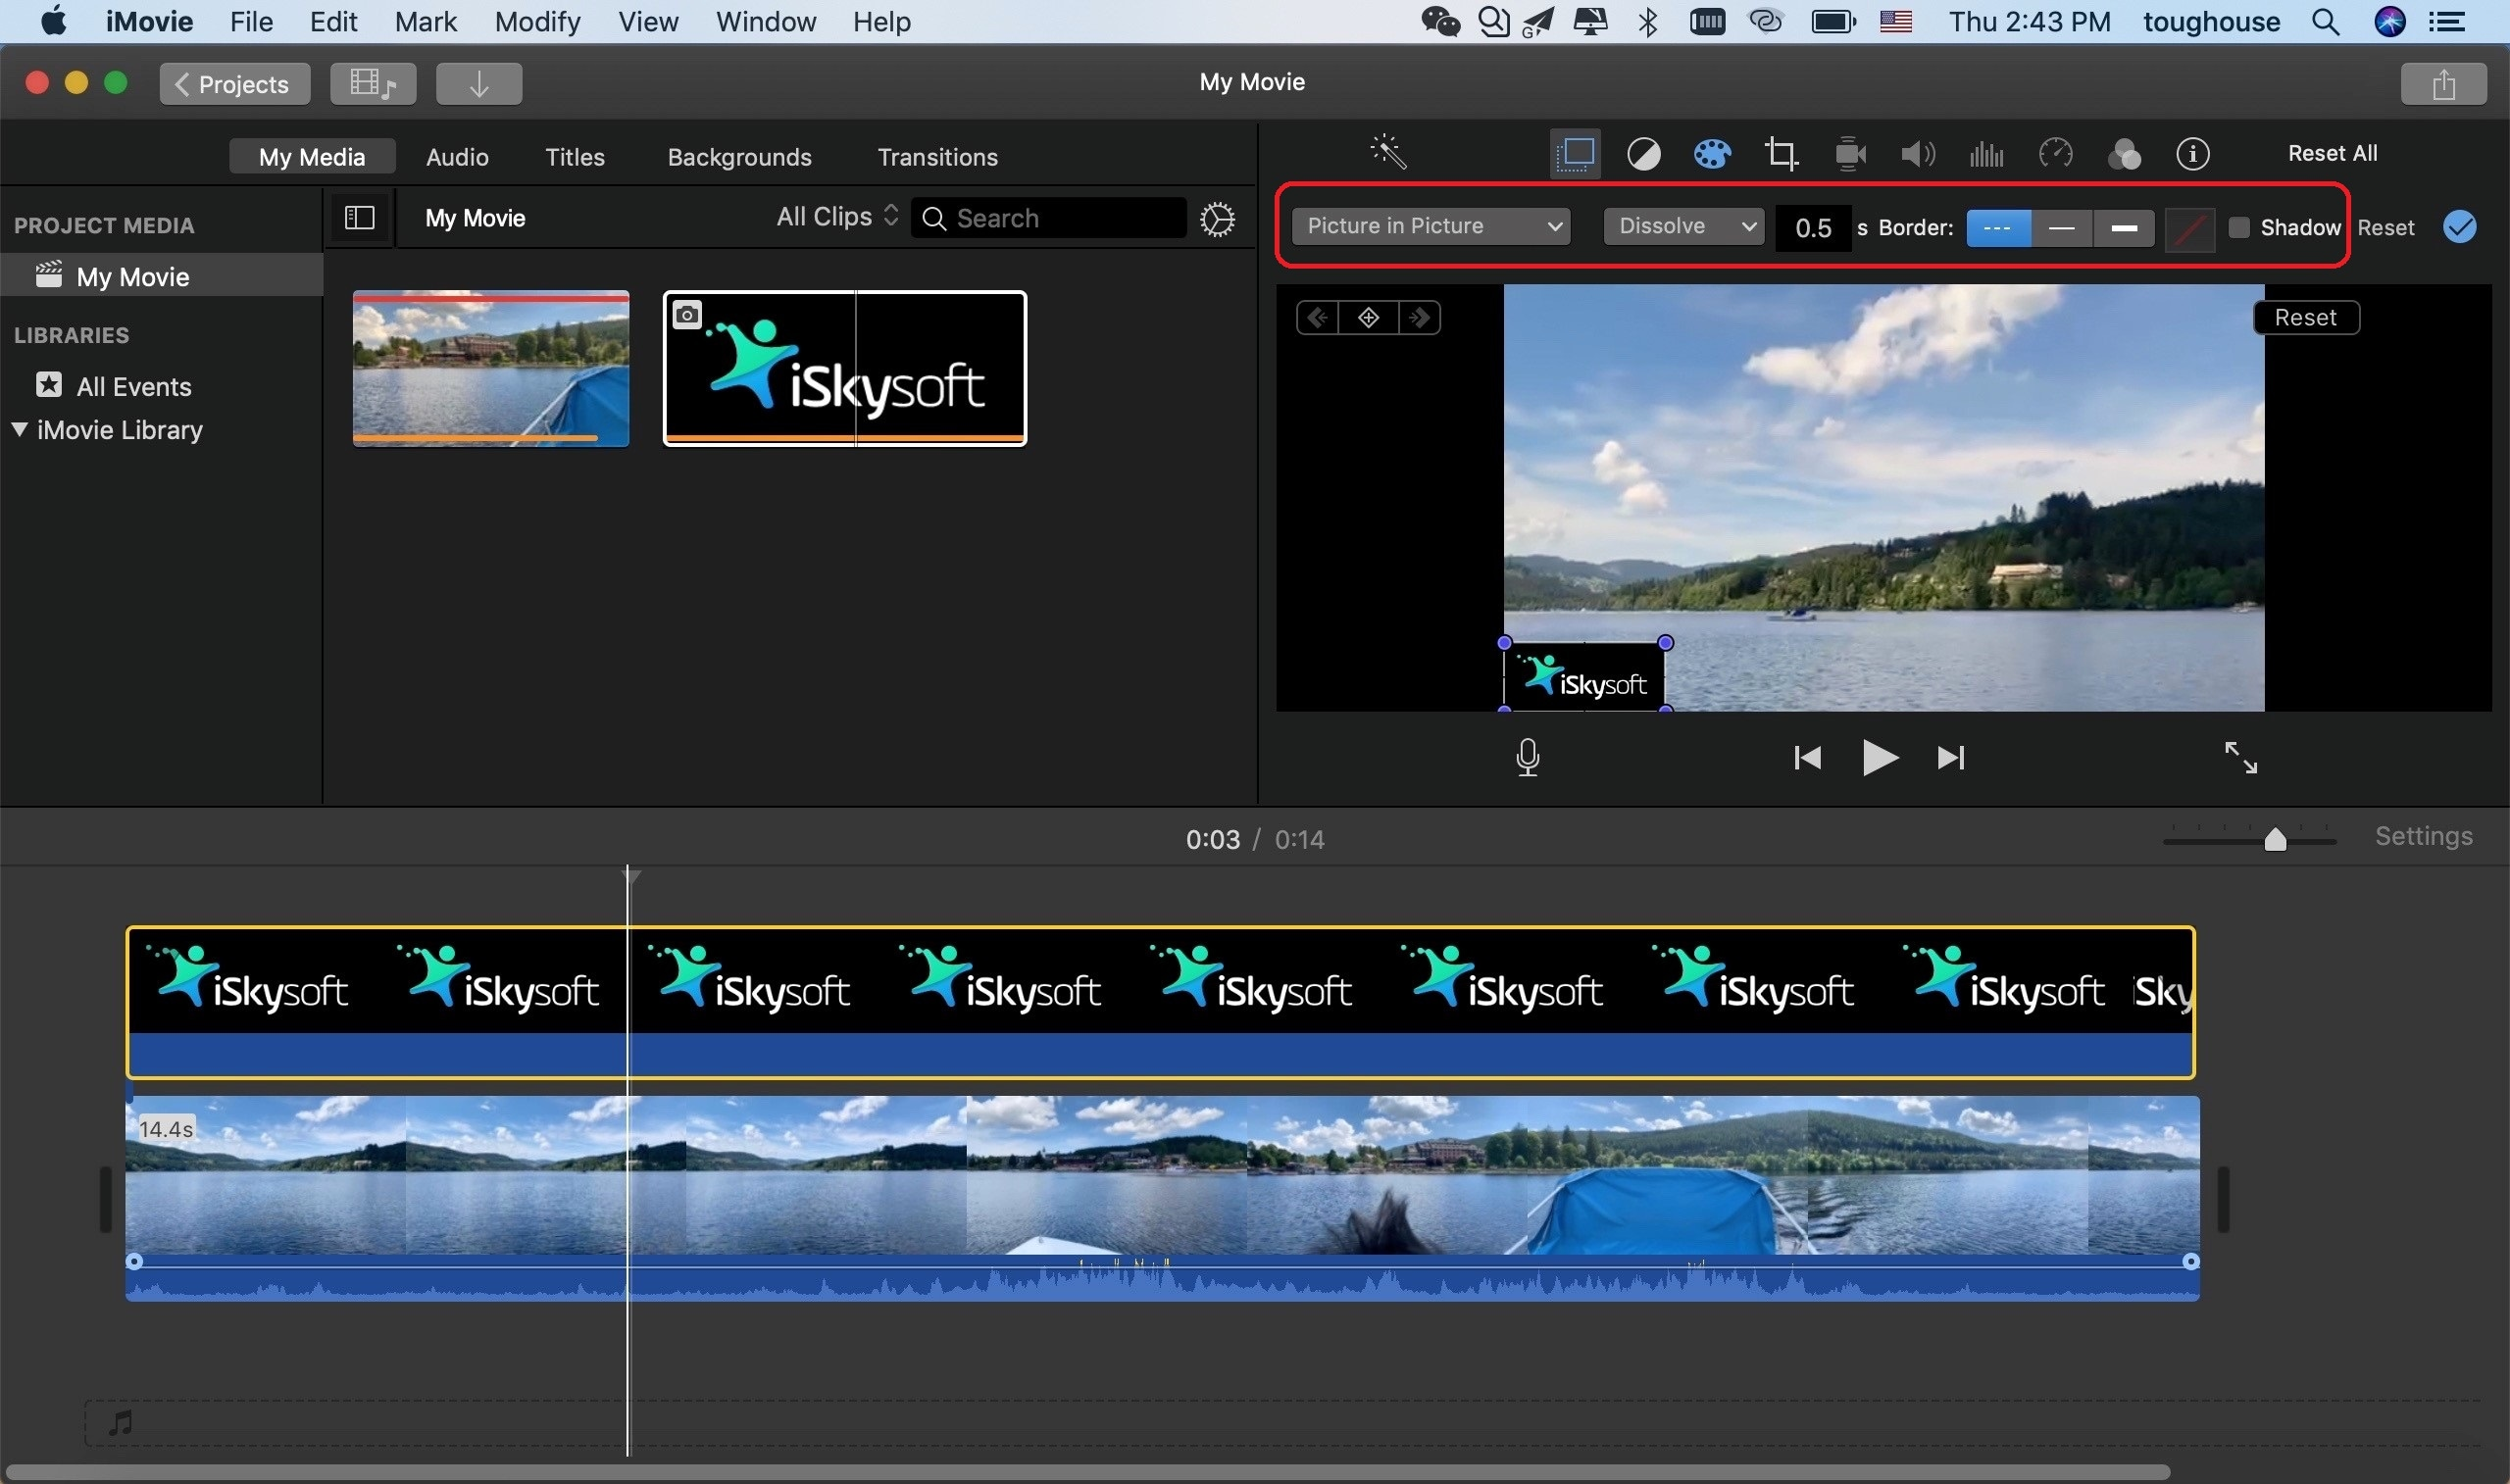 How To Make and Add a Watermark/Logo to Video in iMovie